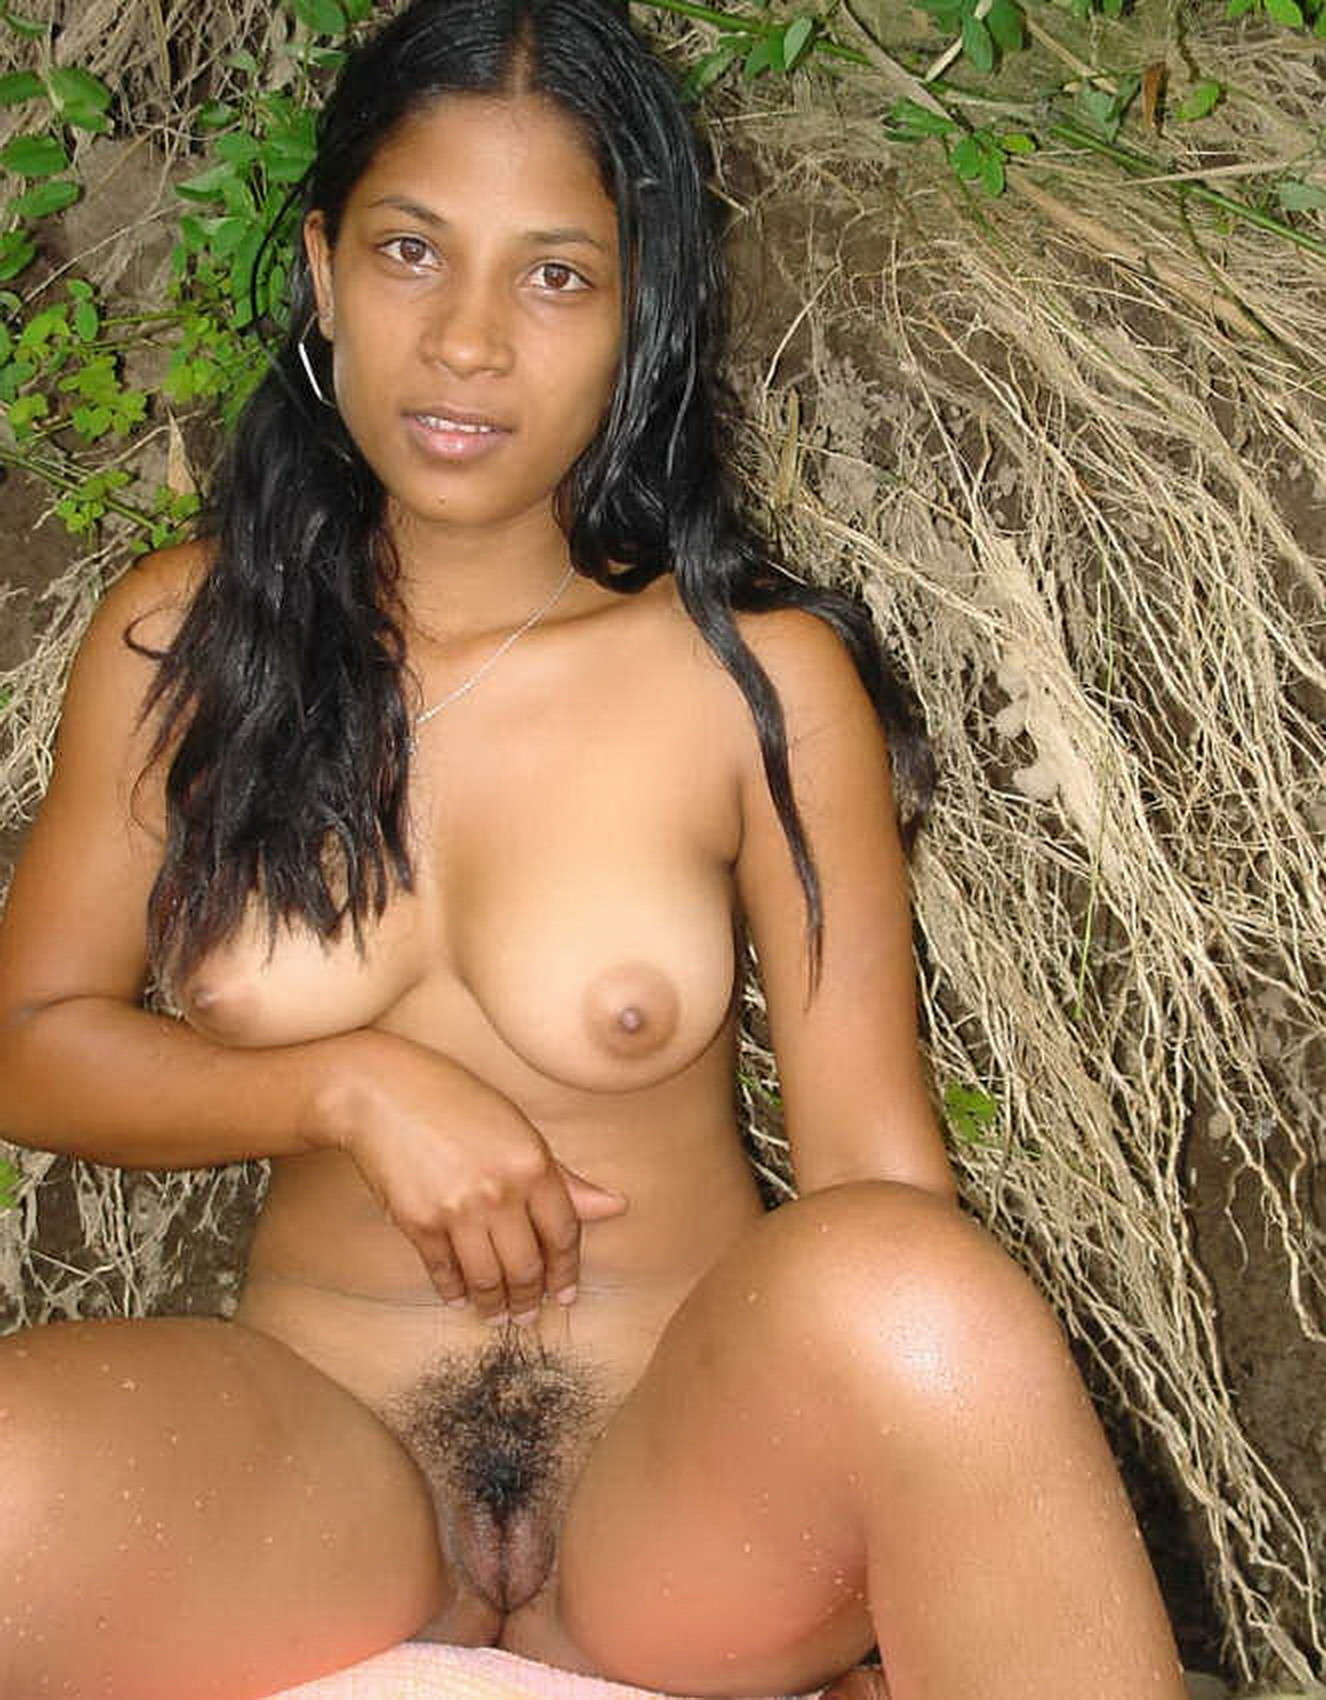 Sri lankan sexgirls and womans on line size